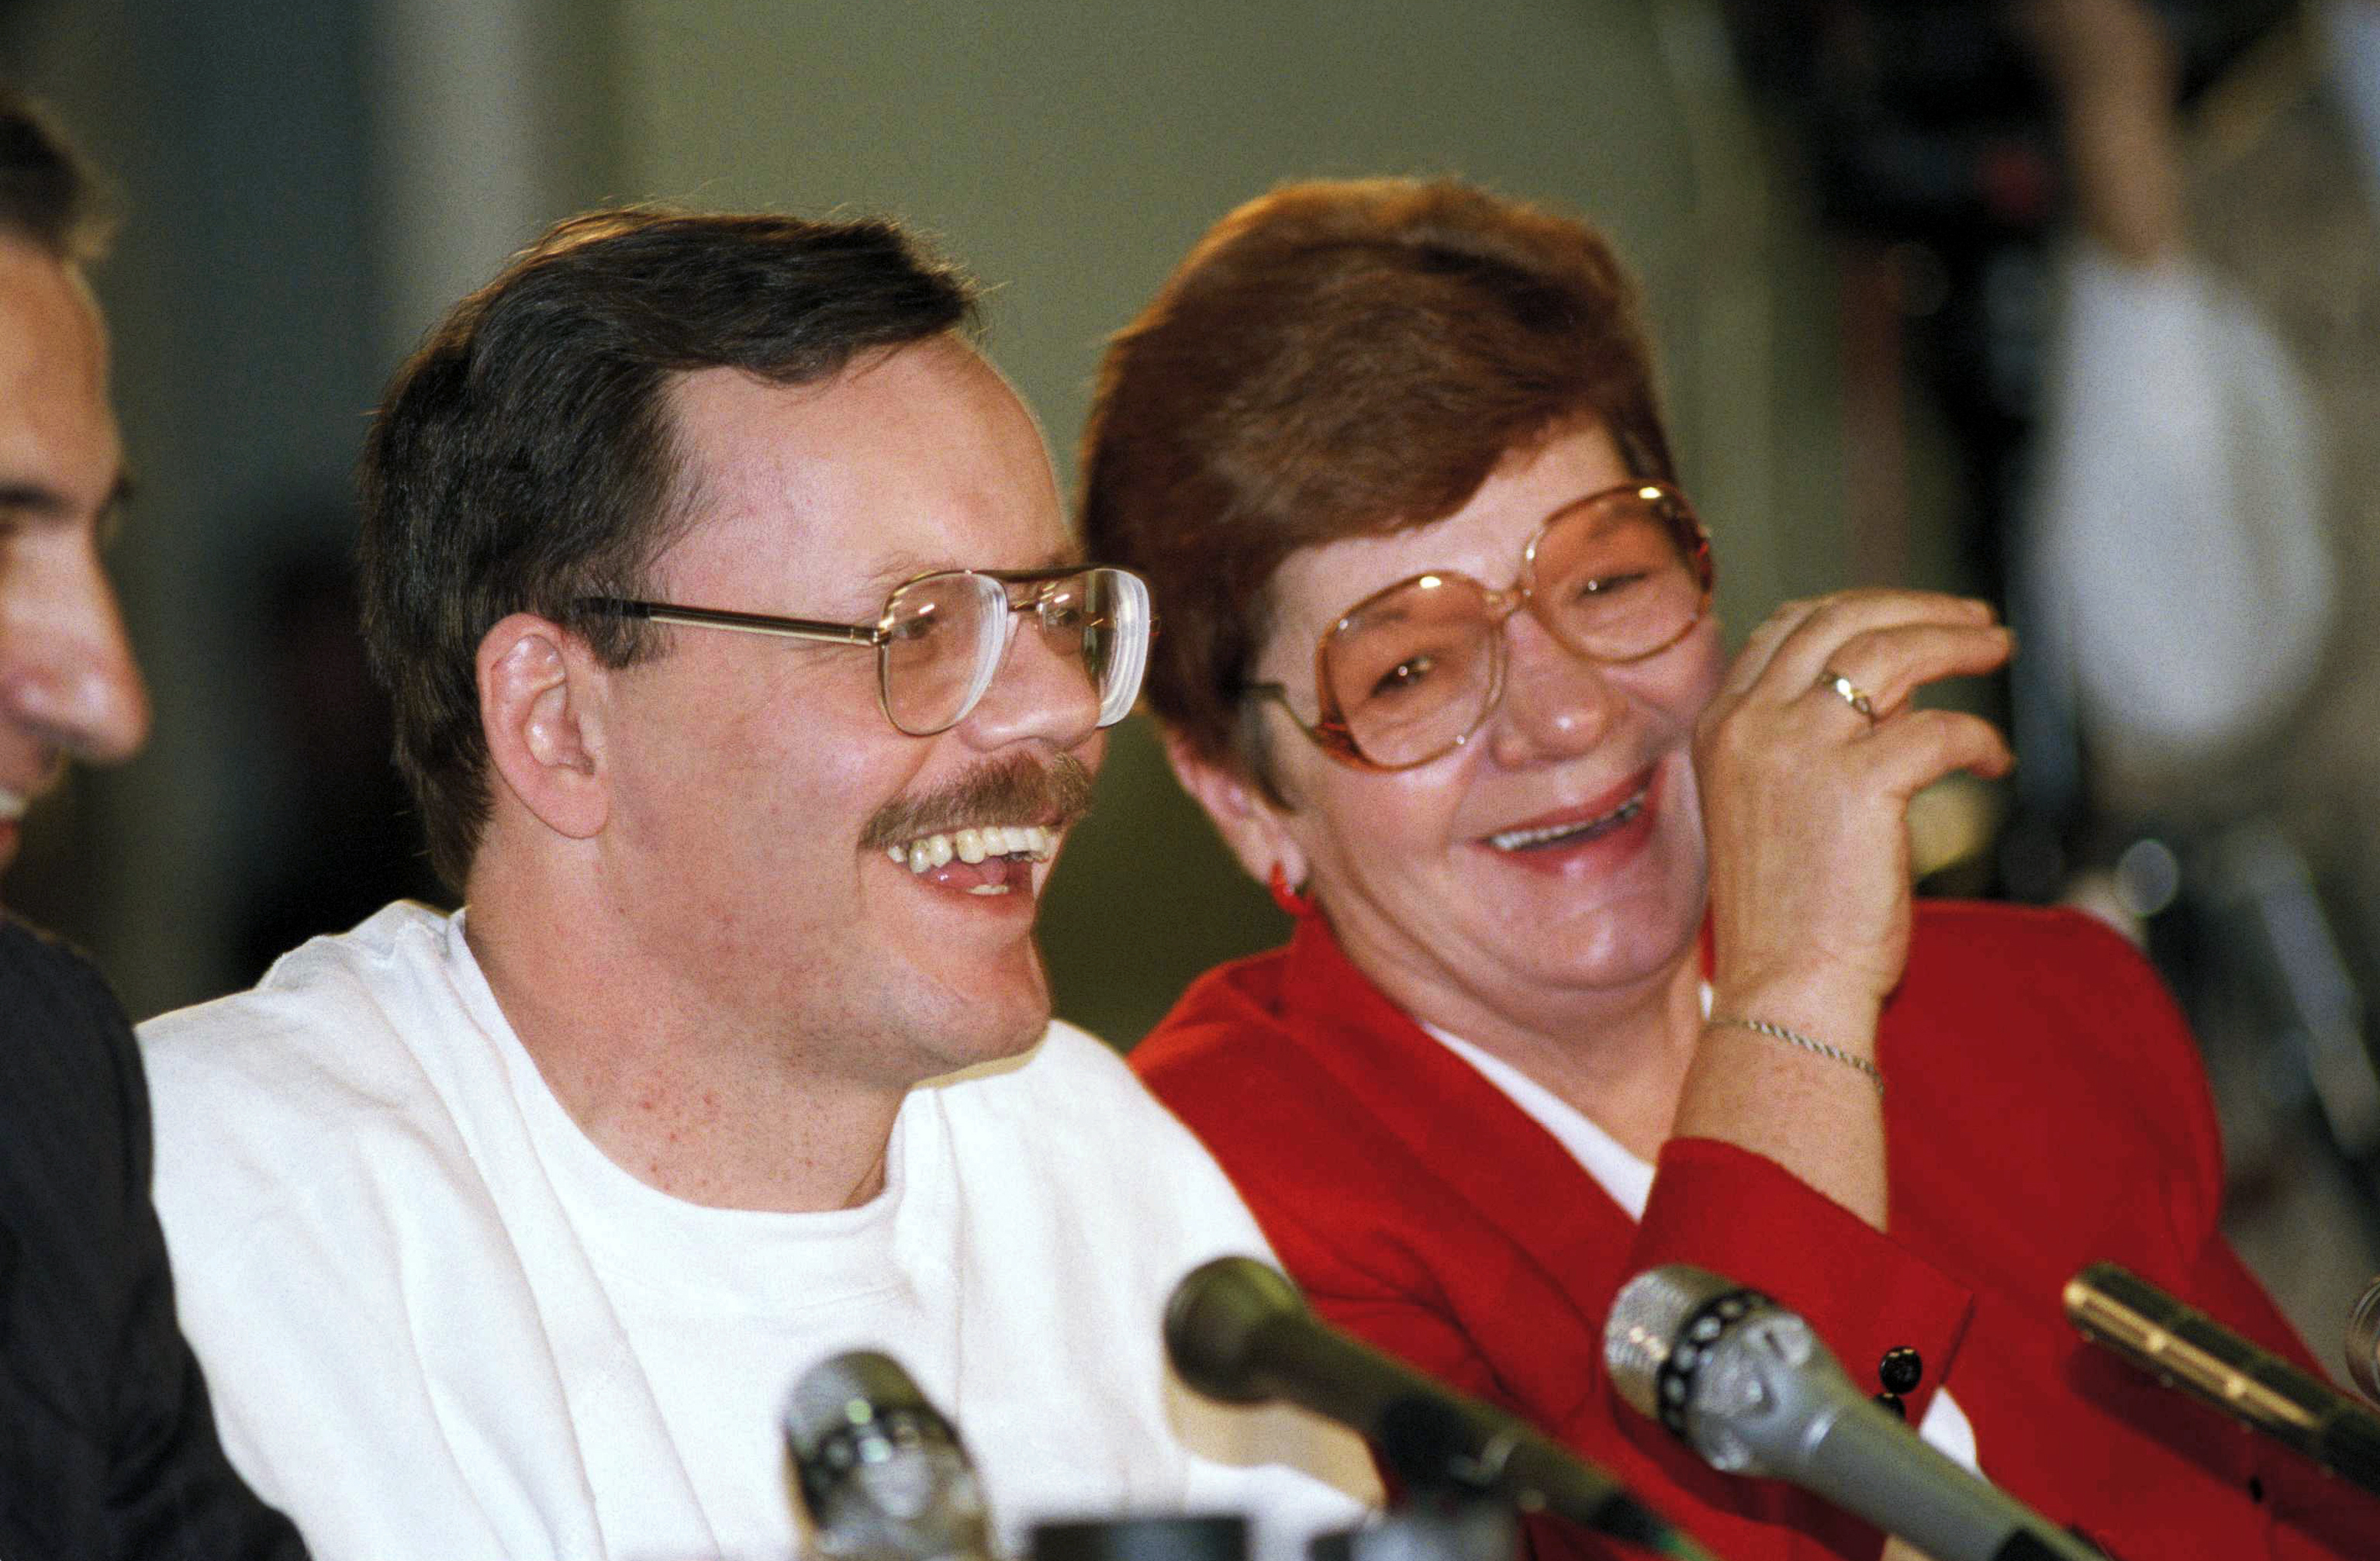 FILE - Former U.S. hostage Terry Anderson and his sister Peggy Say enjoy a light moment during Anderson's news conference in Wiesbaden, Germany, Dec. 6, 1991.